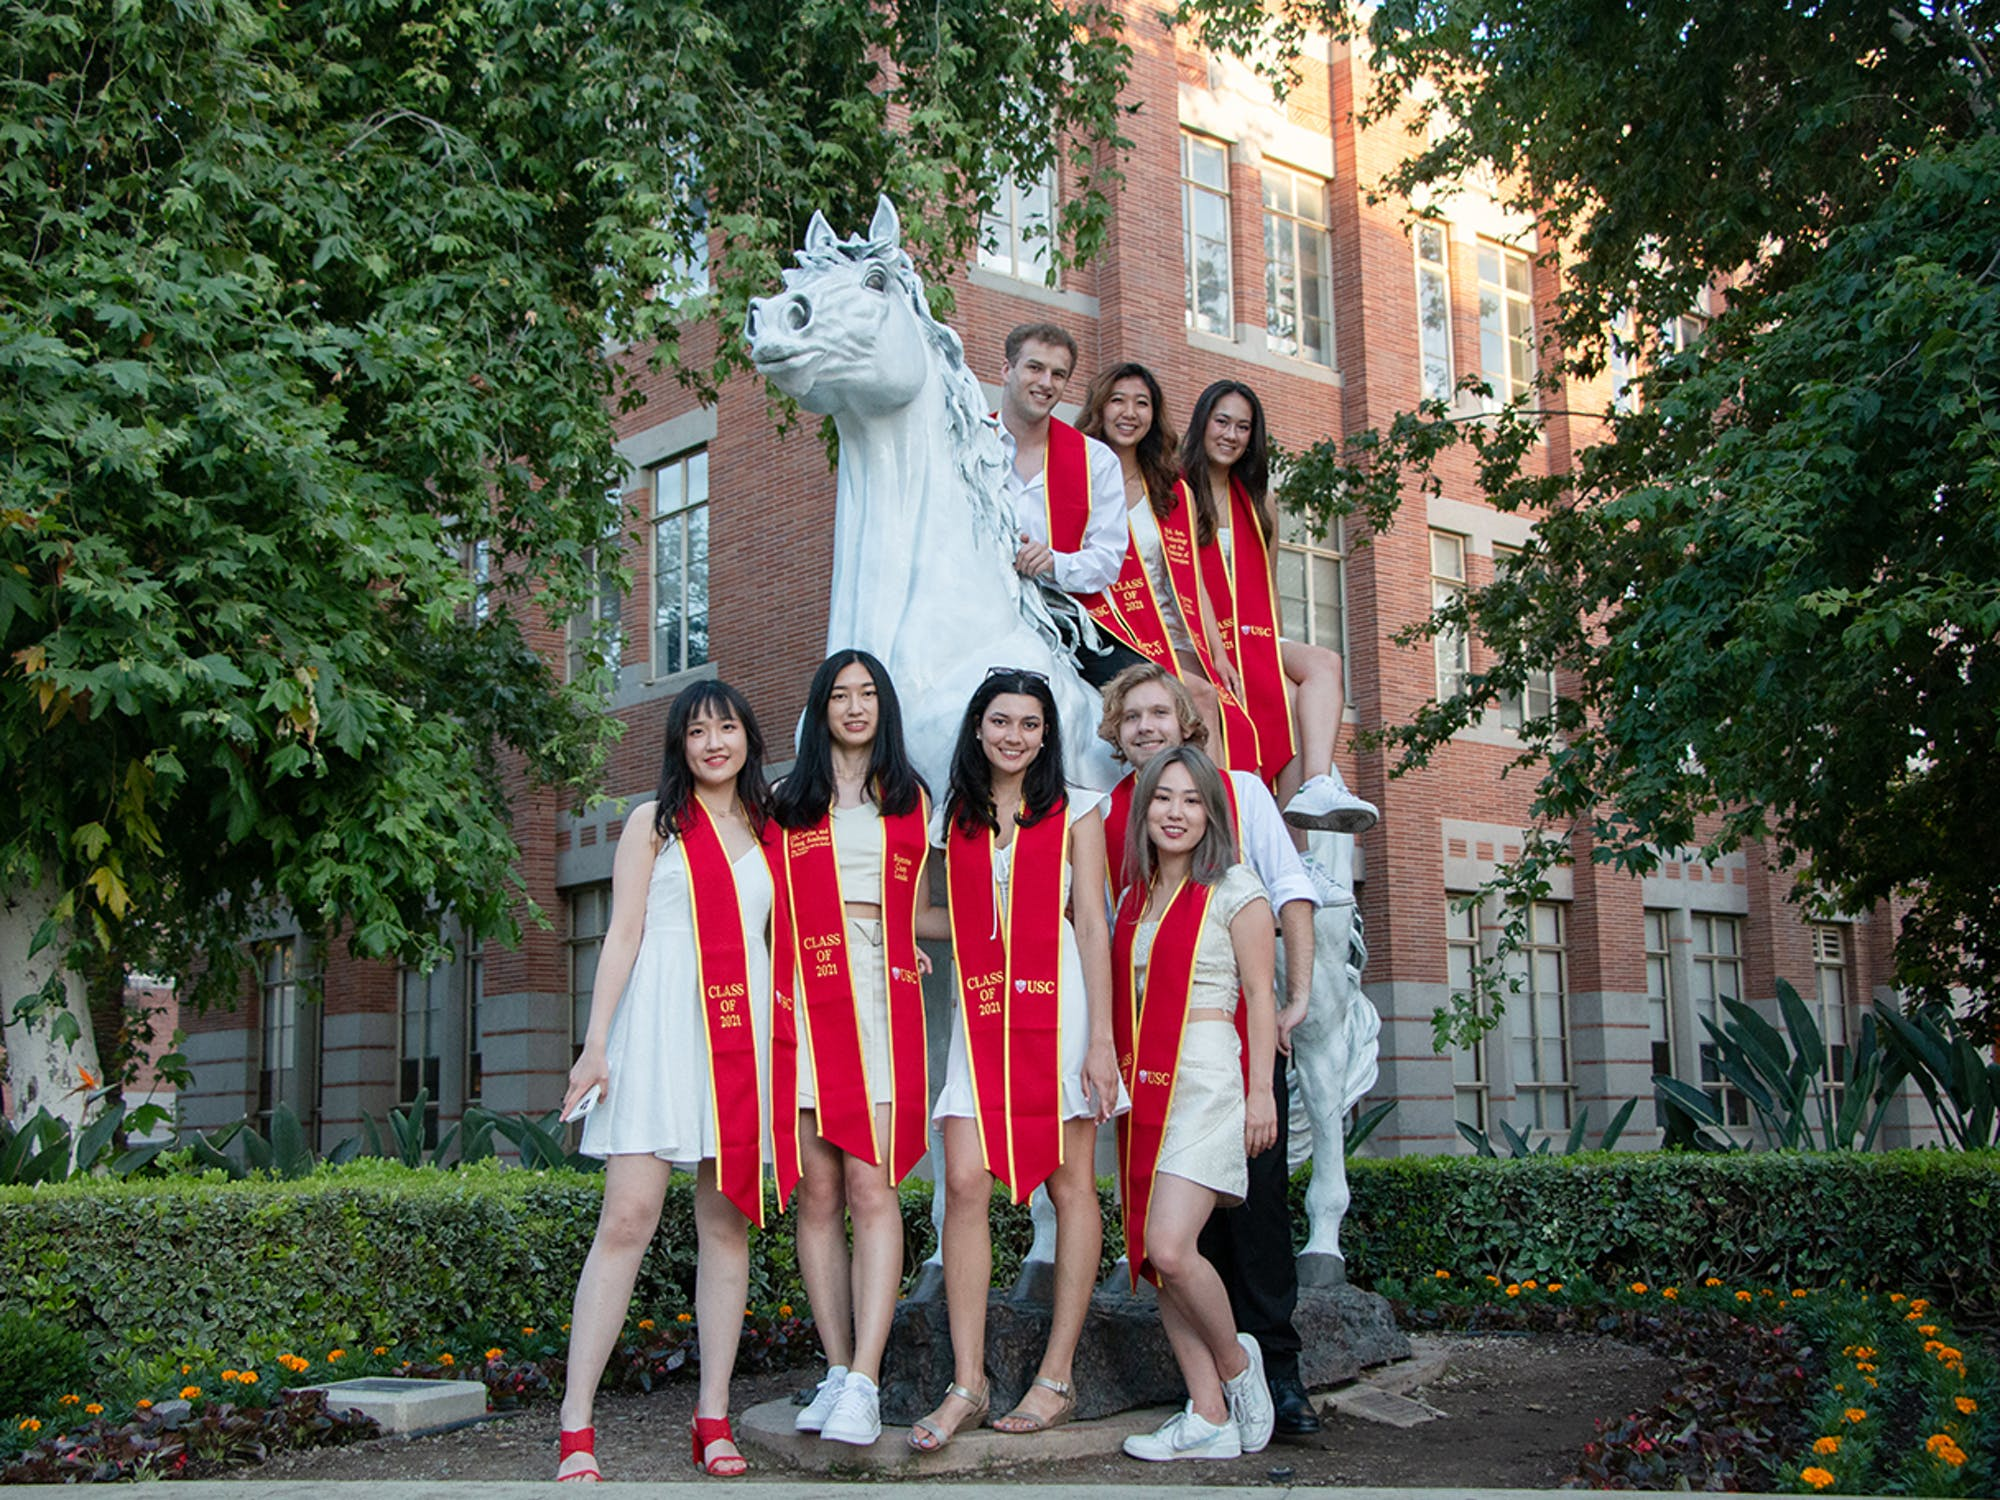 Graduating students wearing red sash standing by horse statue